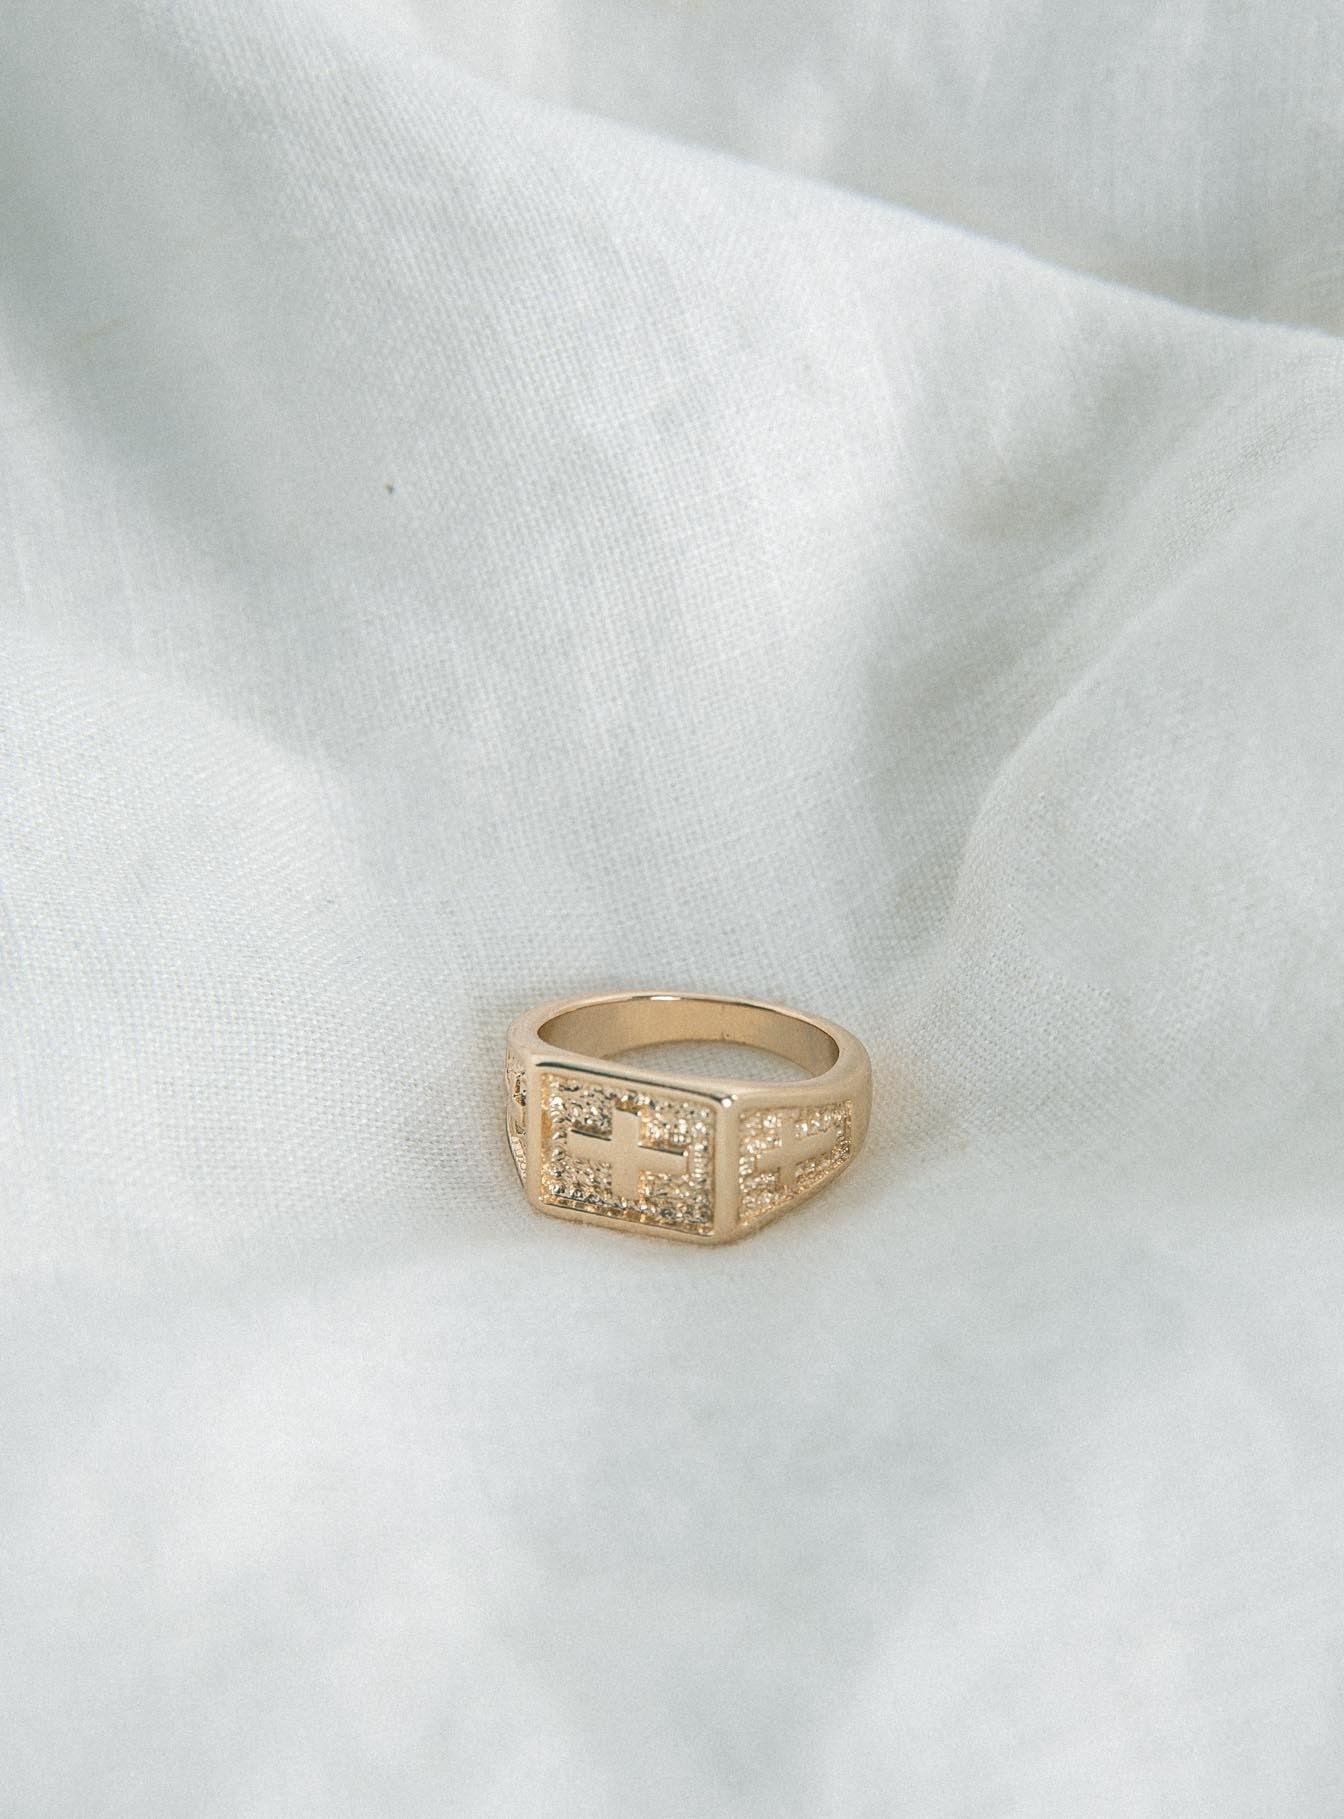 The Holy Grail Ring